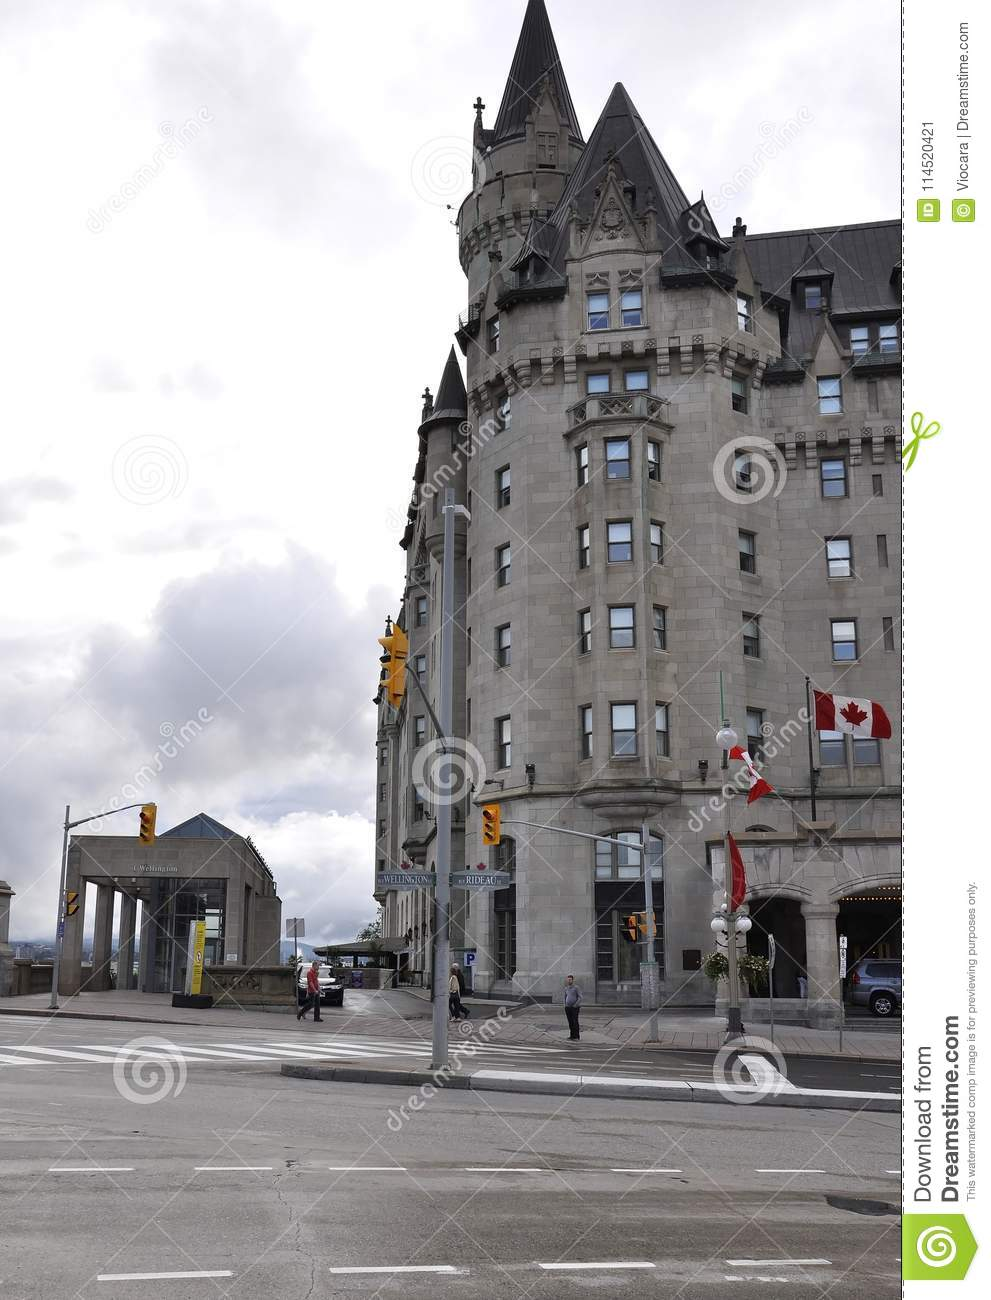 Ottawa, 26th June: Fairmont Chateau Laurier building from Downtown of Ottawa in Canada